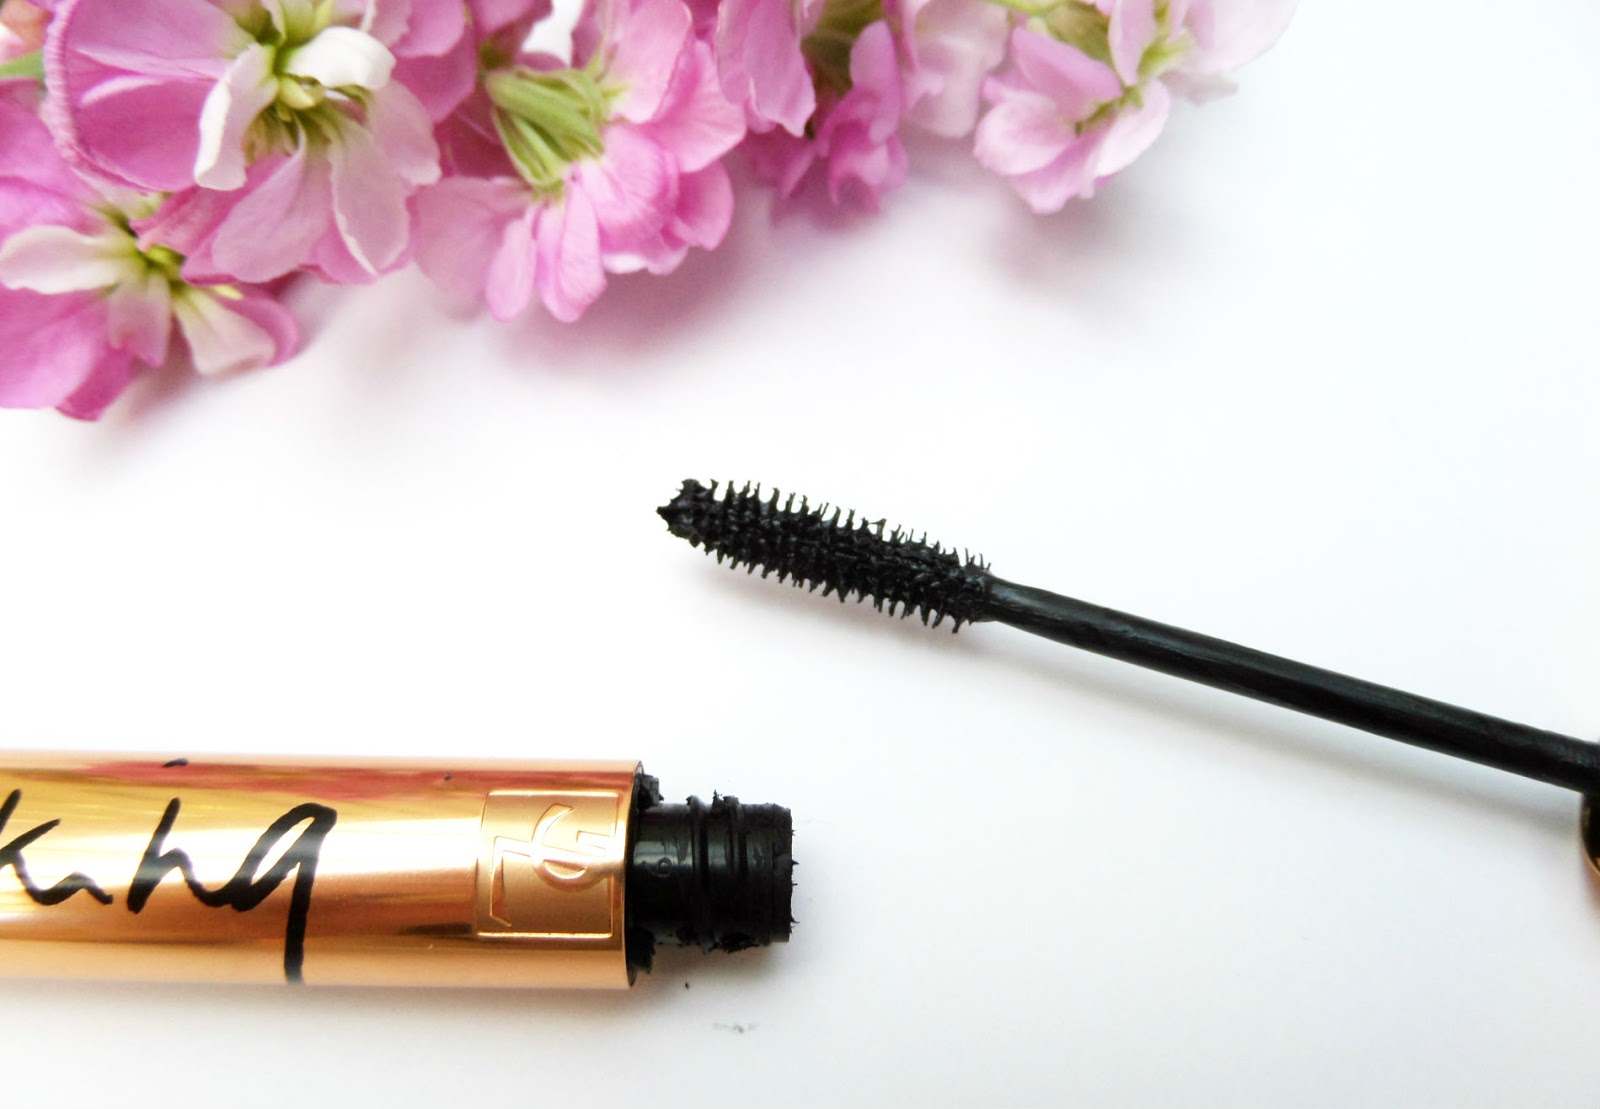 Yves Saint Laurent Shocking Mascara Review Wand